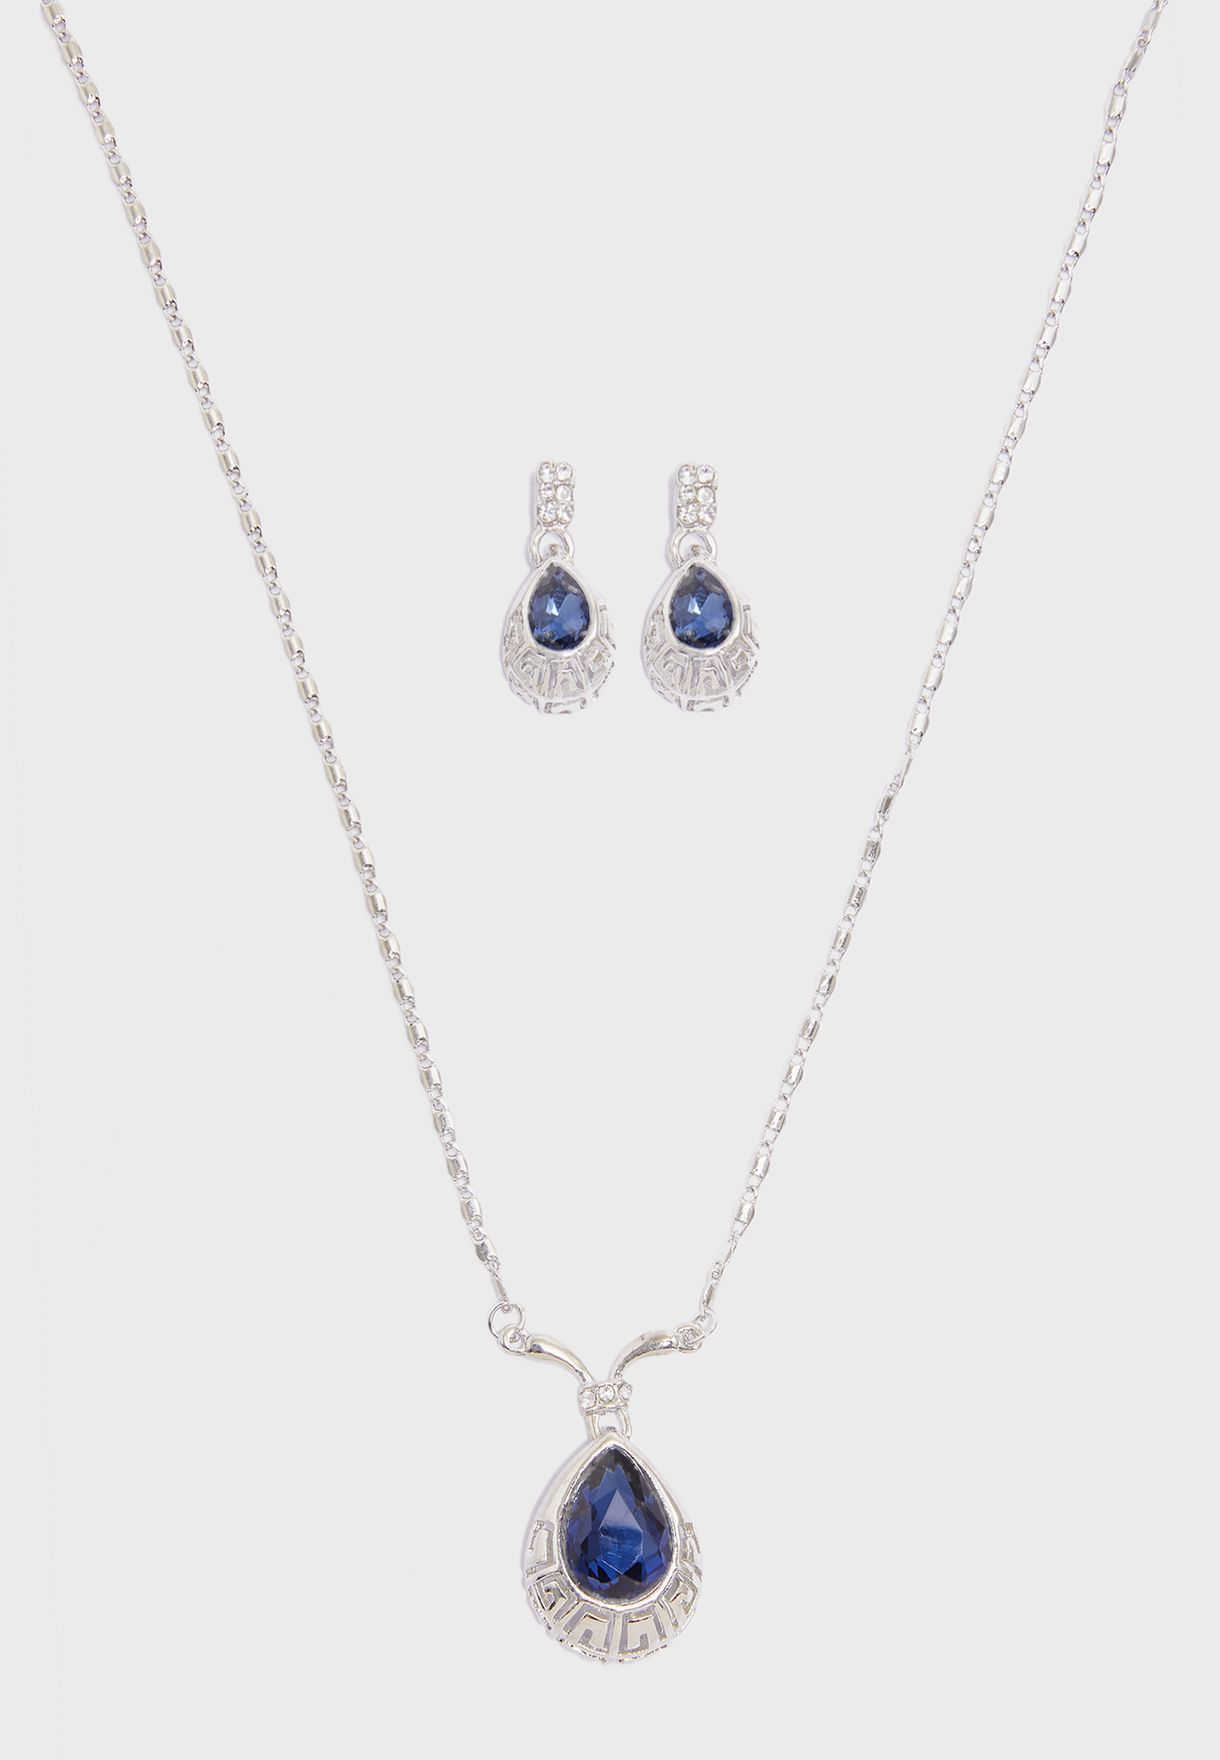 Diamante Detail Necklace & Earrings Set